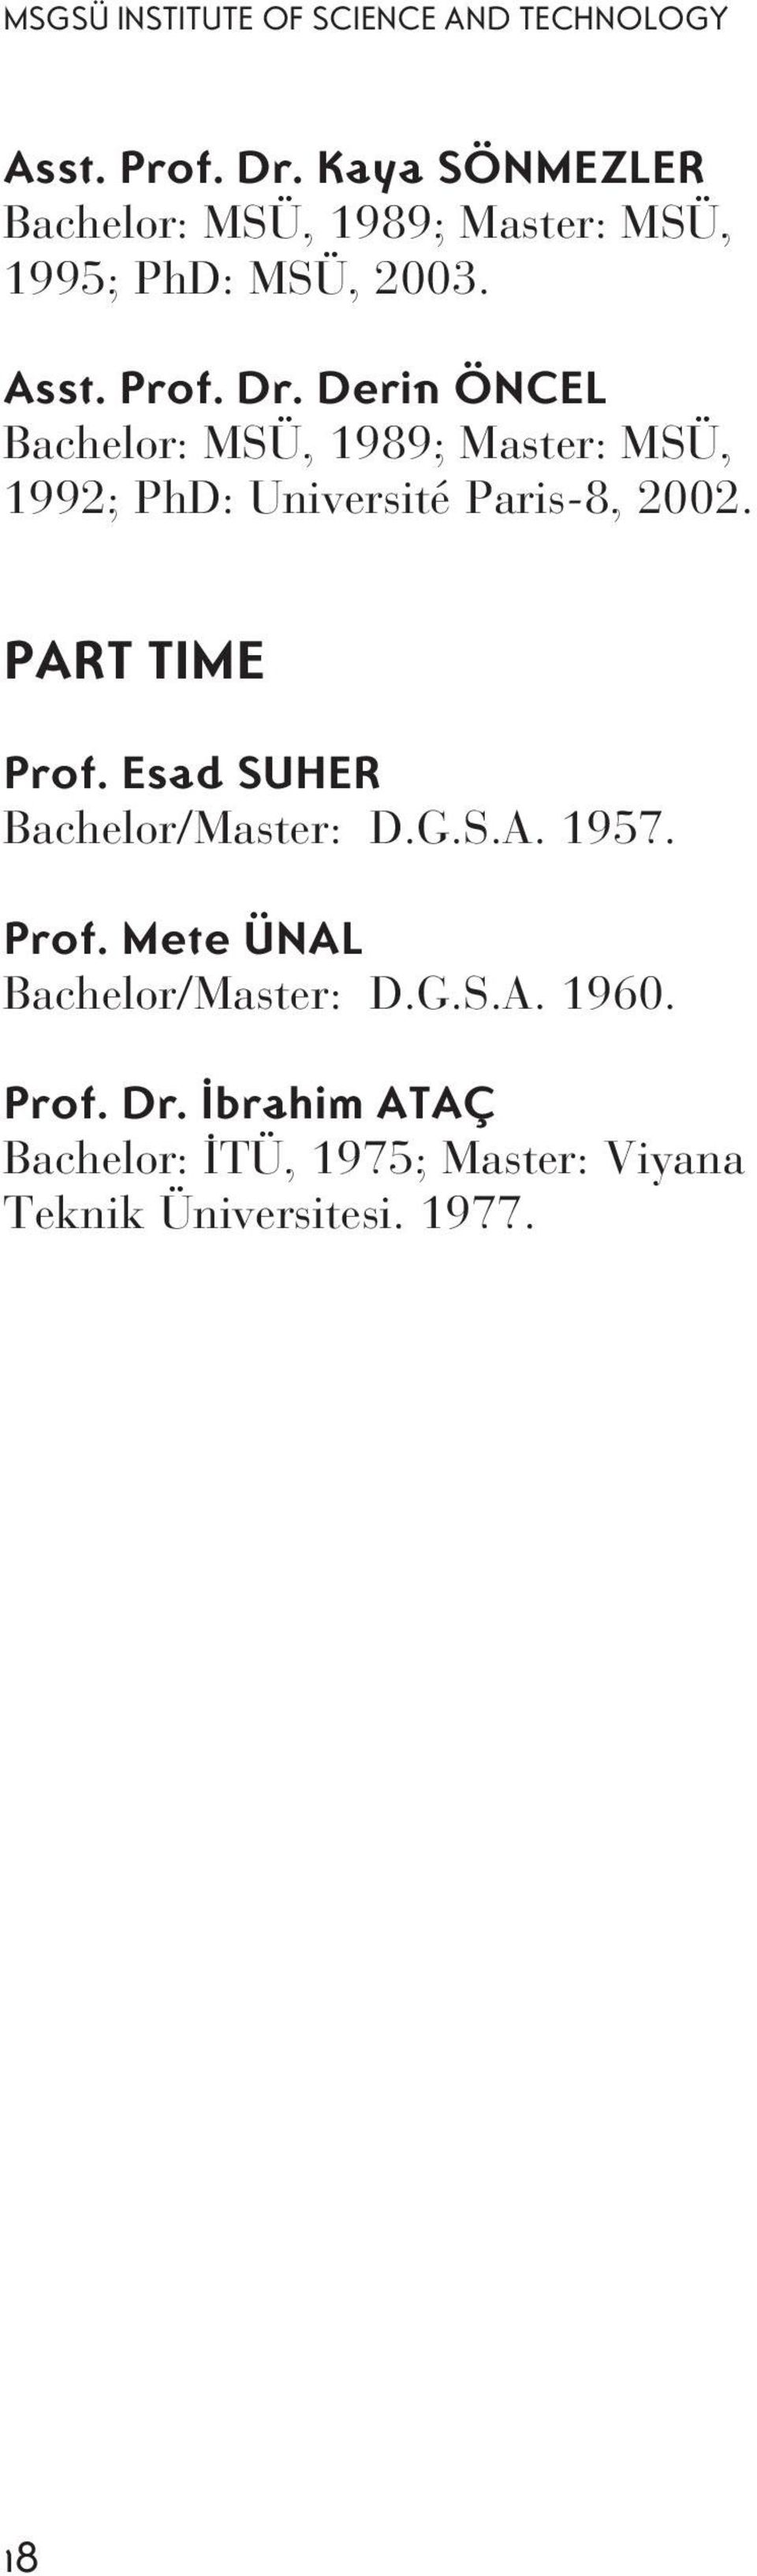 Derin ÖNCEL Bachelor: MSÜ, 1989; Master: MSÜ, 1992; PhD: Université Paris-8, 2002. PART TIME Prof.